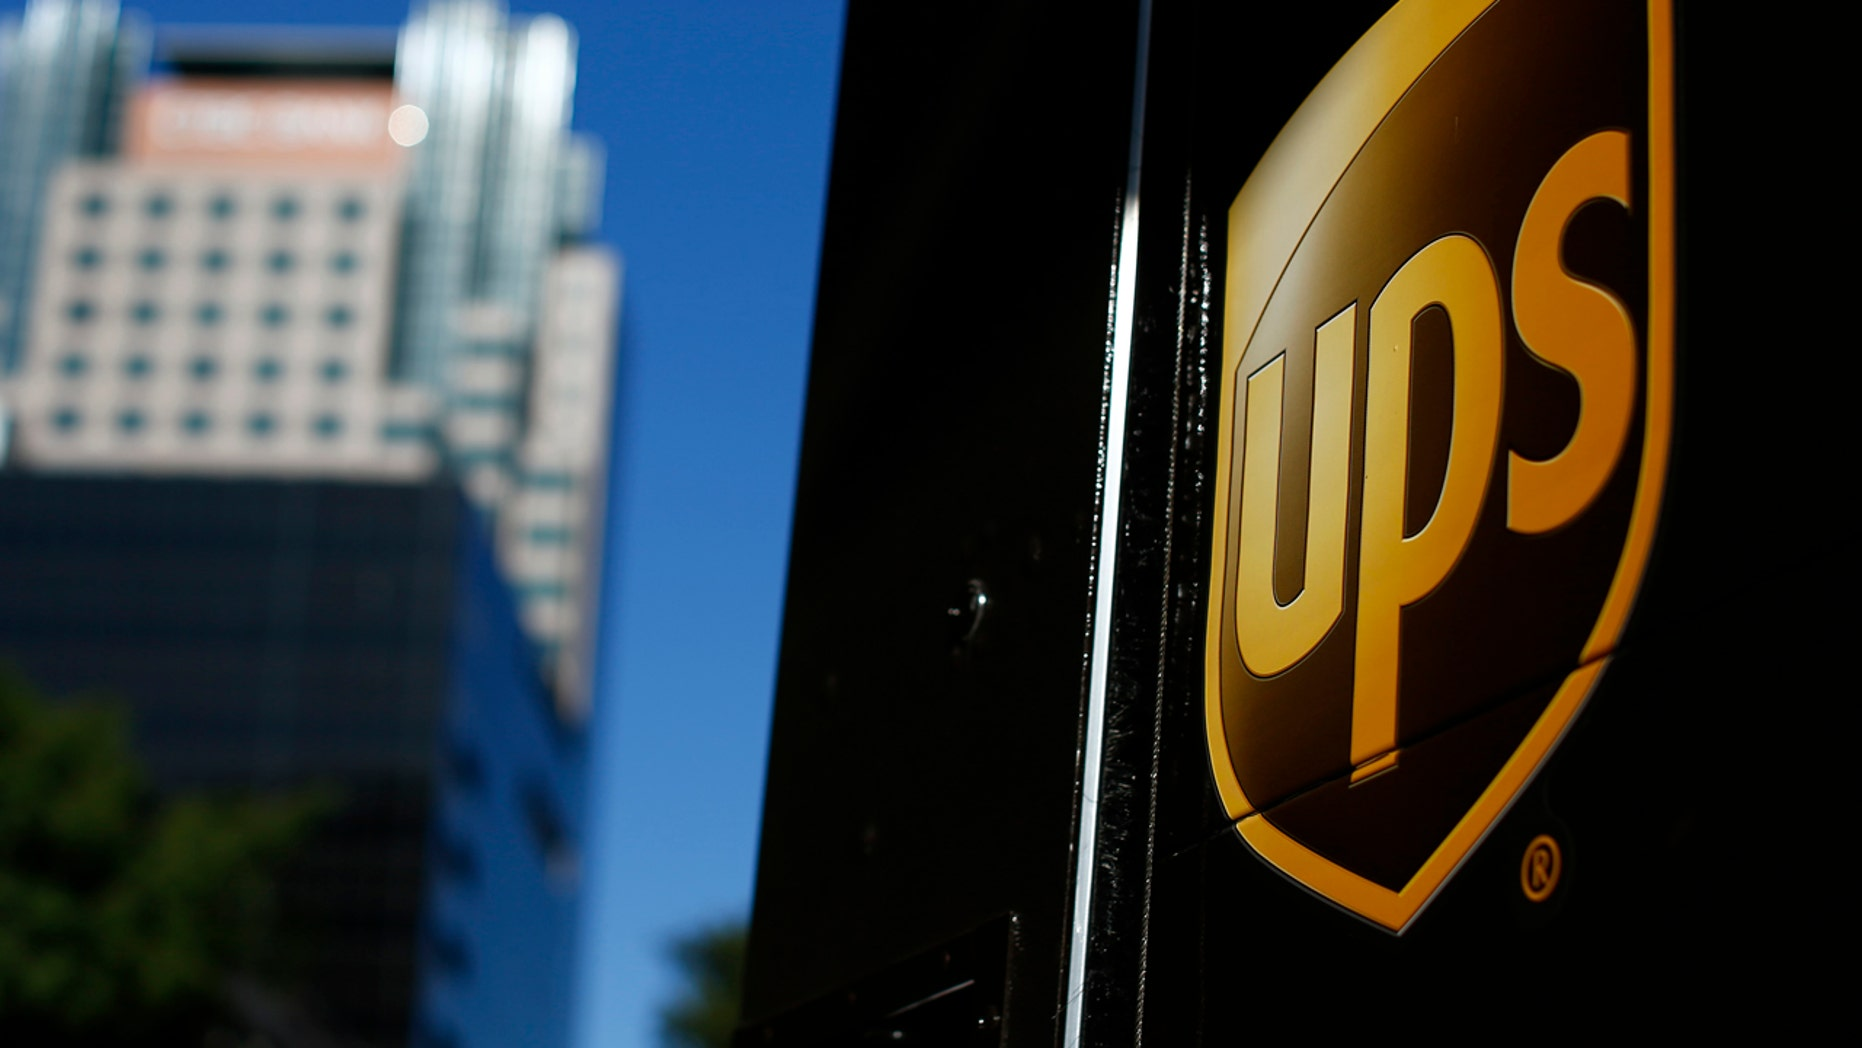 The logo of United Parcel Service is seen on one of the company's delivery trucks in Los Angeles, Oct. 29, 2014.